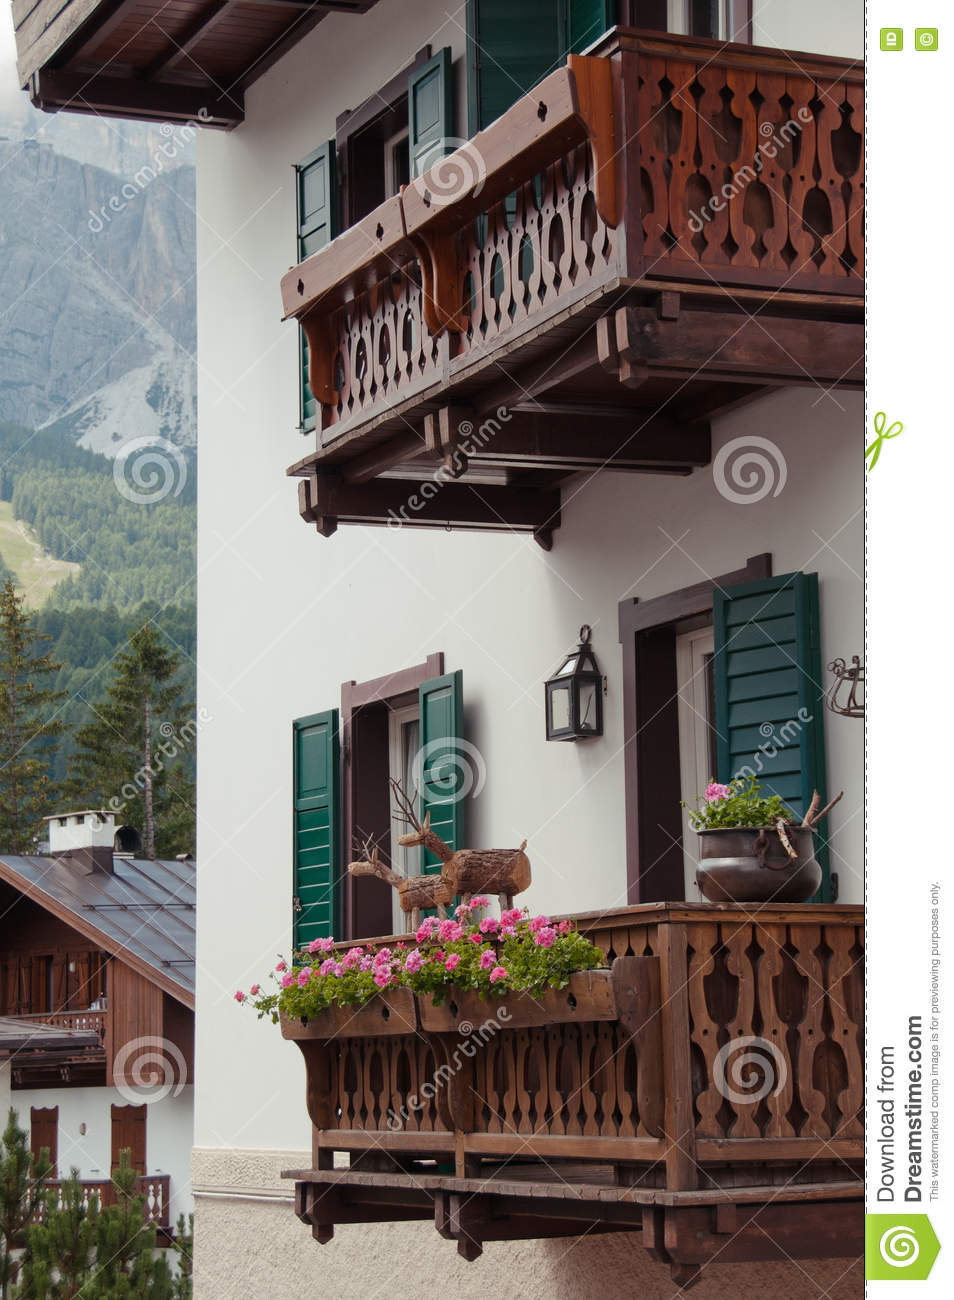 Balcon alpin traditionnel de maison photo stock image for Balcon de maison